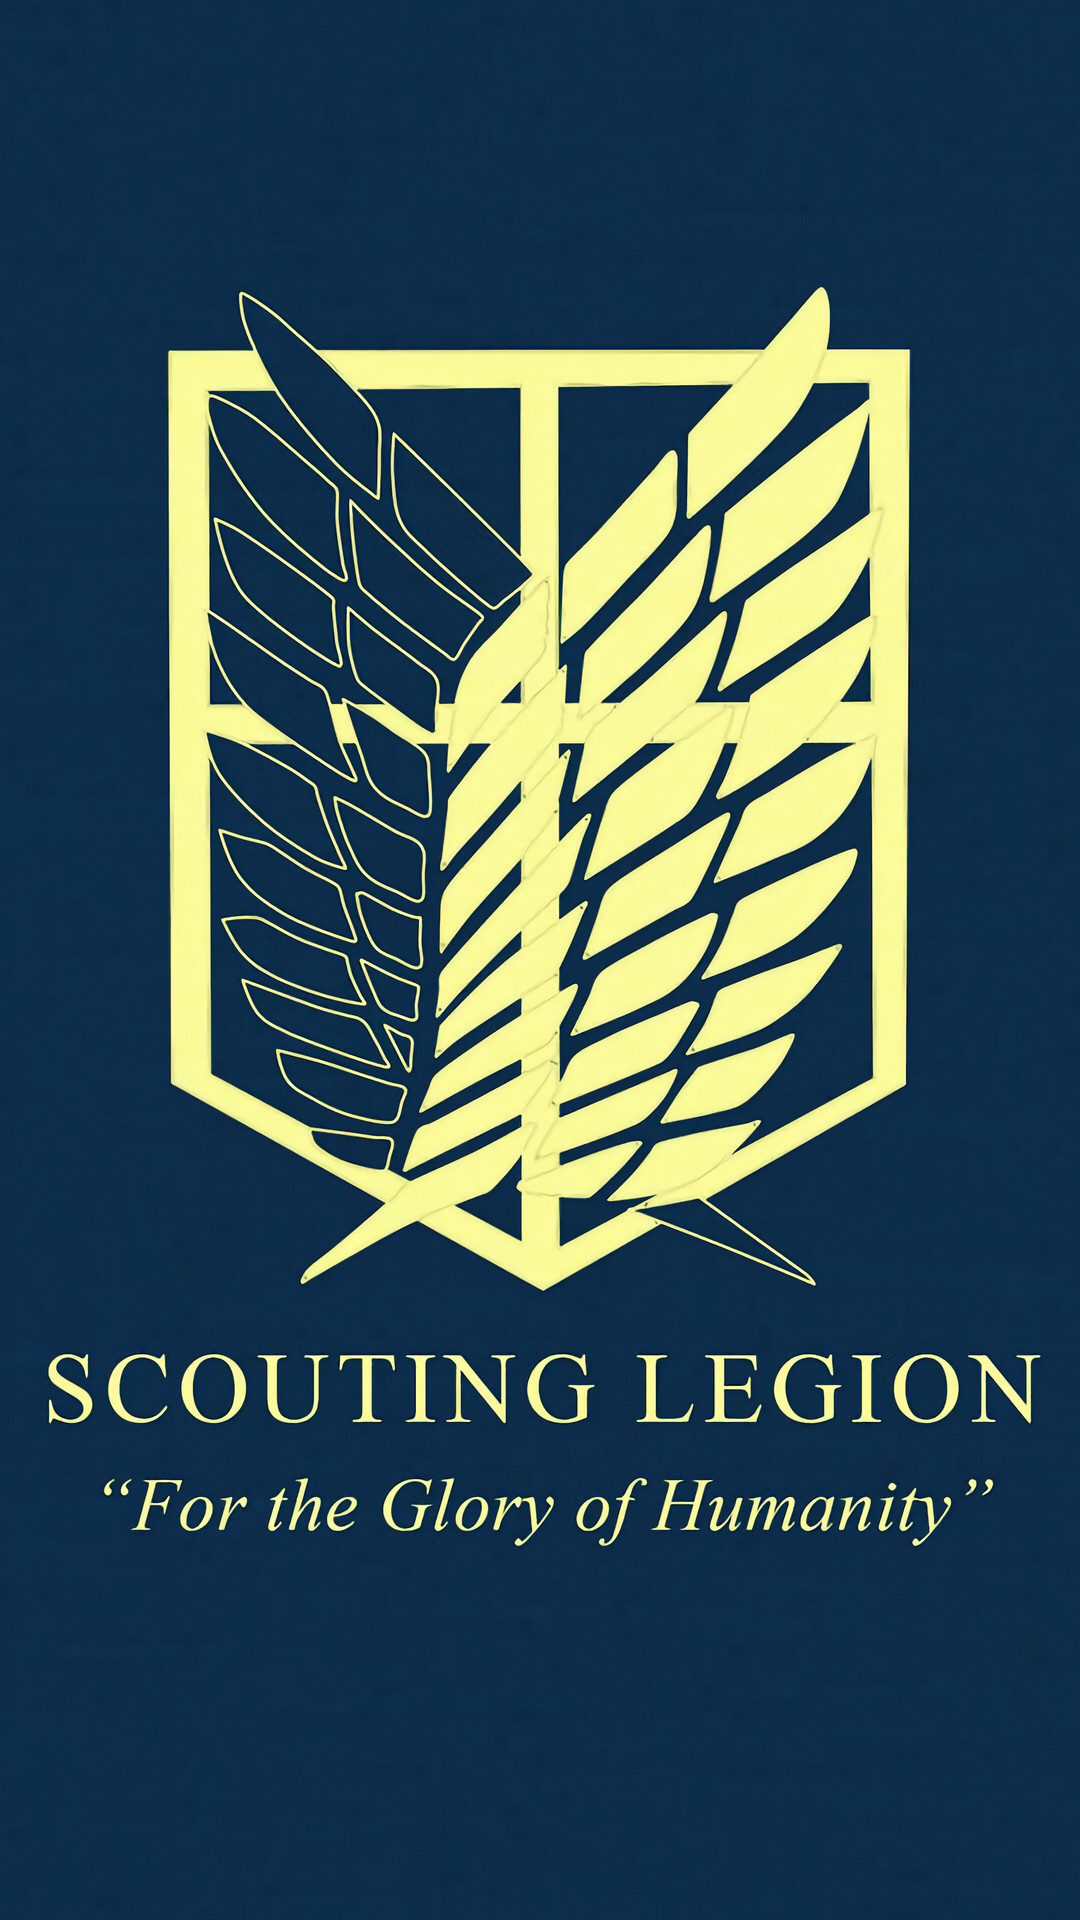 Scouting Legion Wallpaper 75 Images